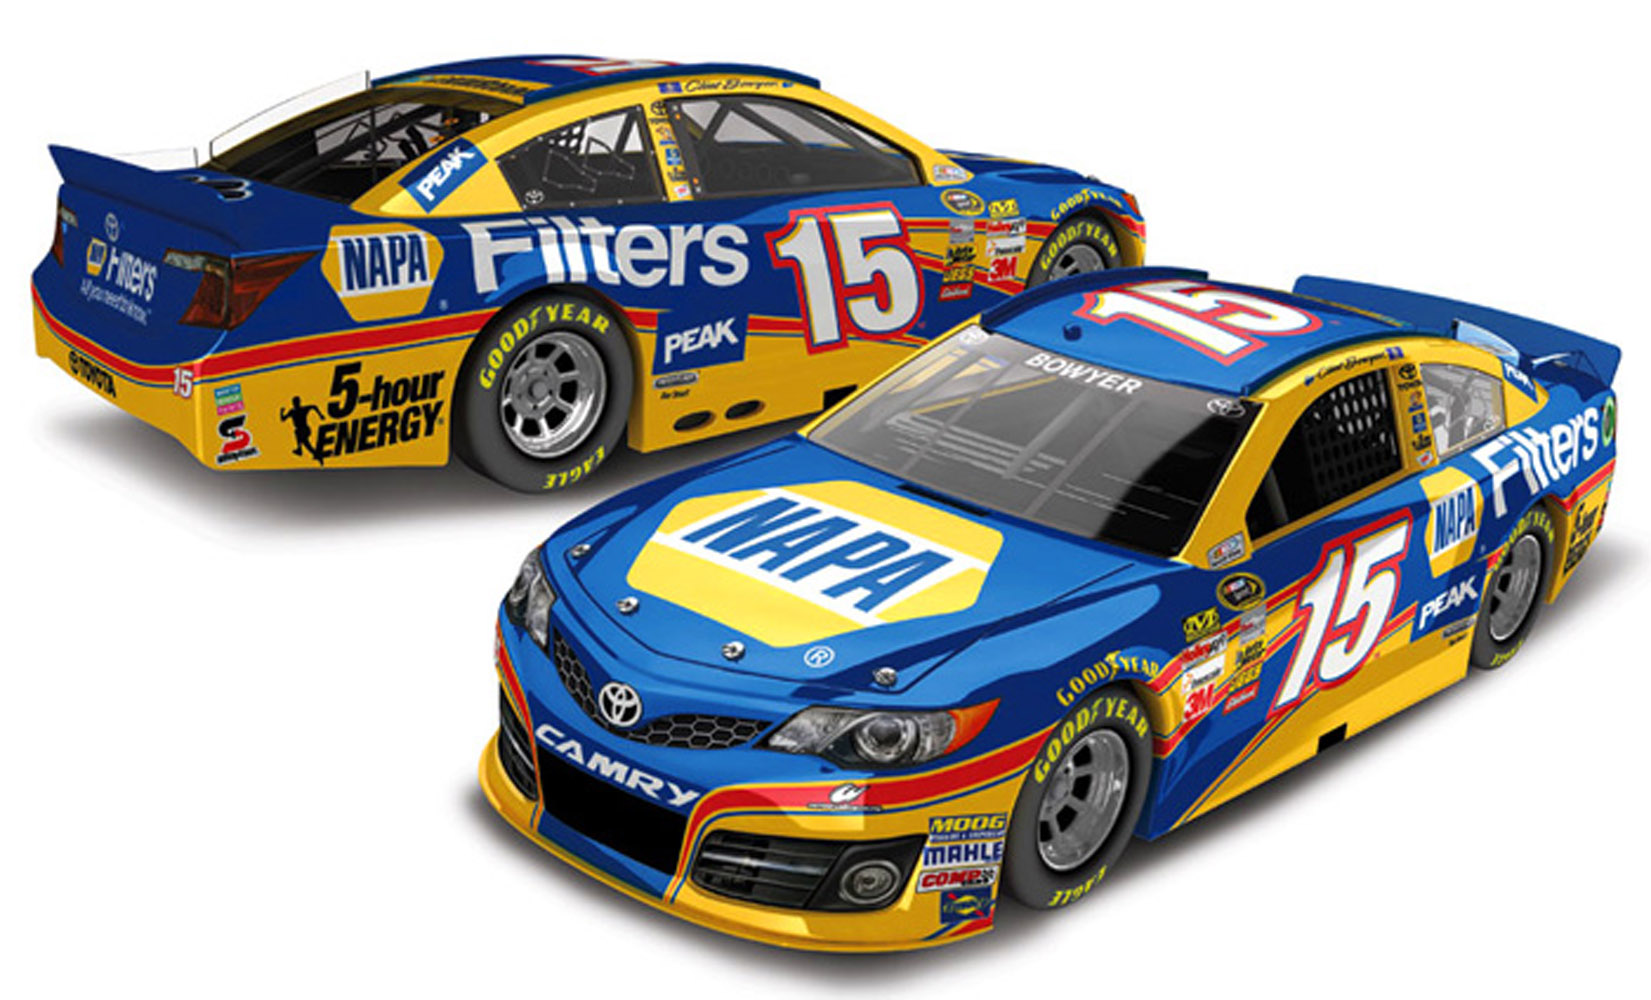 2013 Clint Bowyer #15 NAPA Filters 1:24 Diecast Car